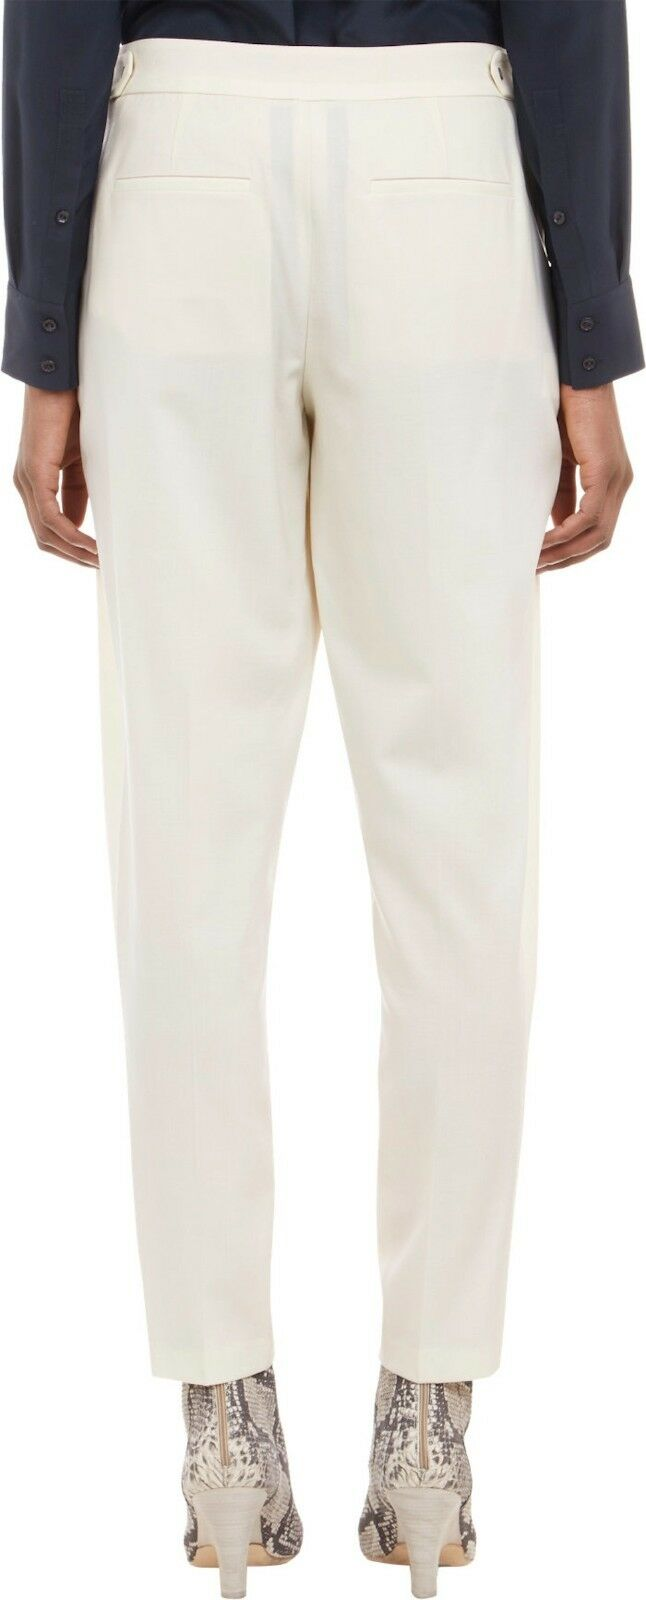 Vince Pleated Trouser Ivory Wool Lycra Relaxed Tapered Ankle Pants Sz 2 NWT